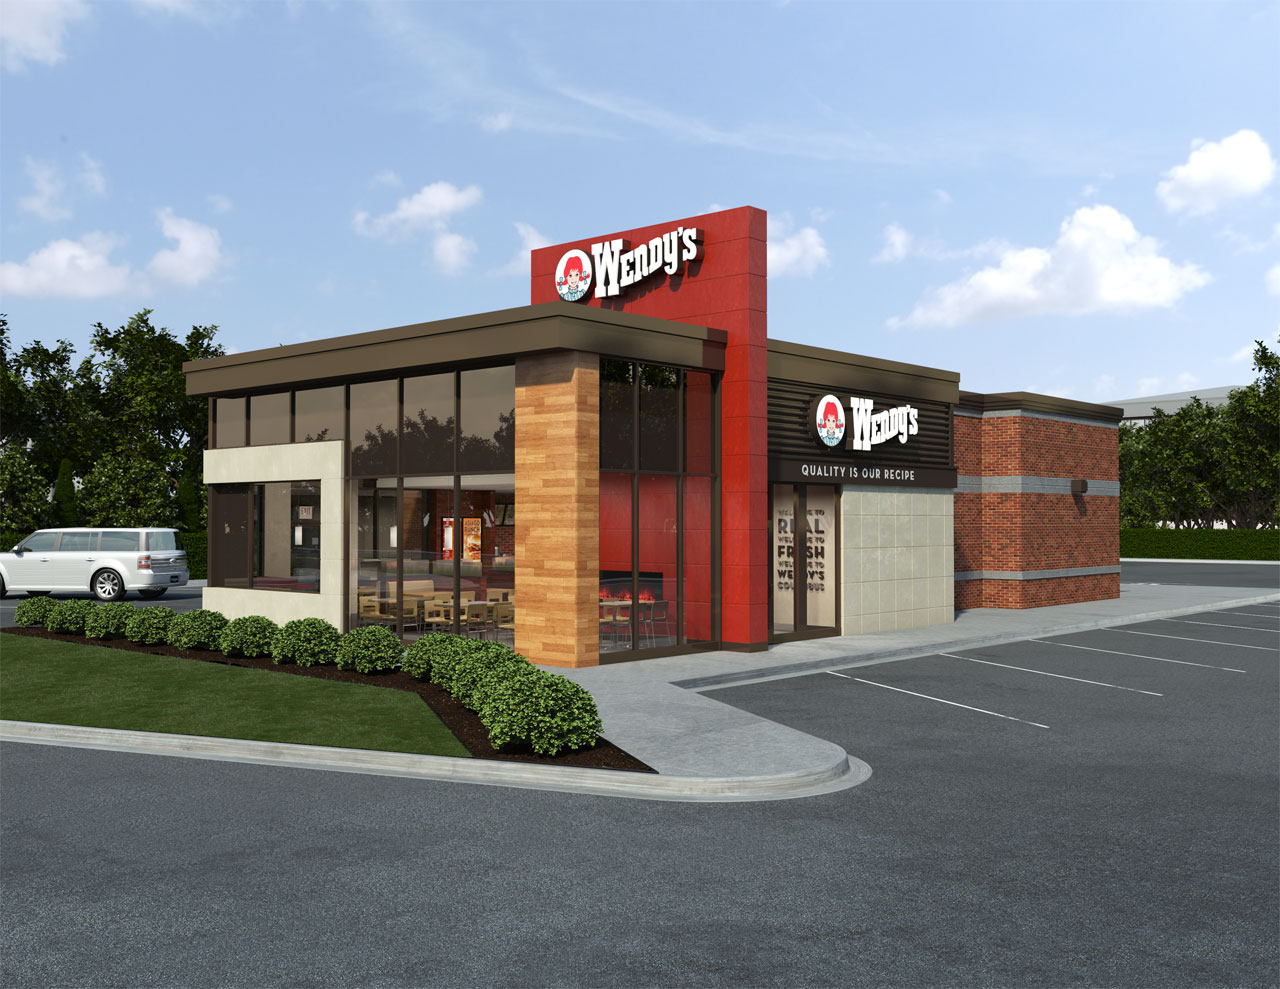 Exterior view of a proposed Wendy's restaurant design including a greenhouse styled dining area with a framed window feature and a central red monolith.